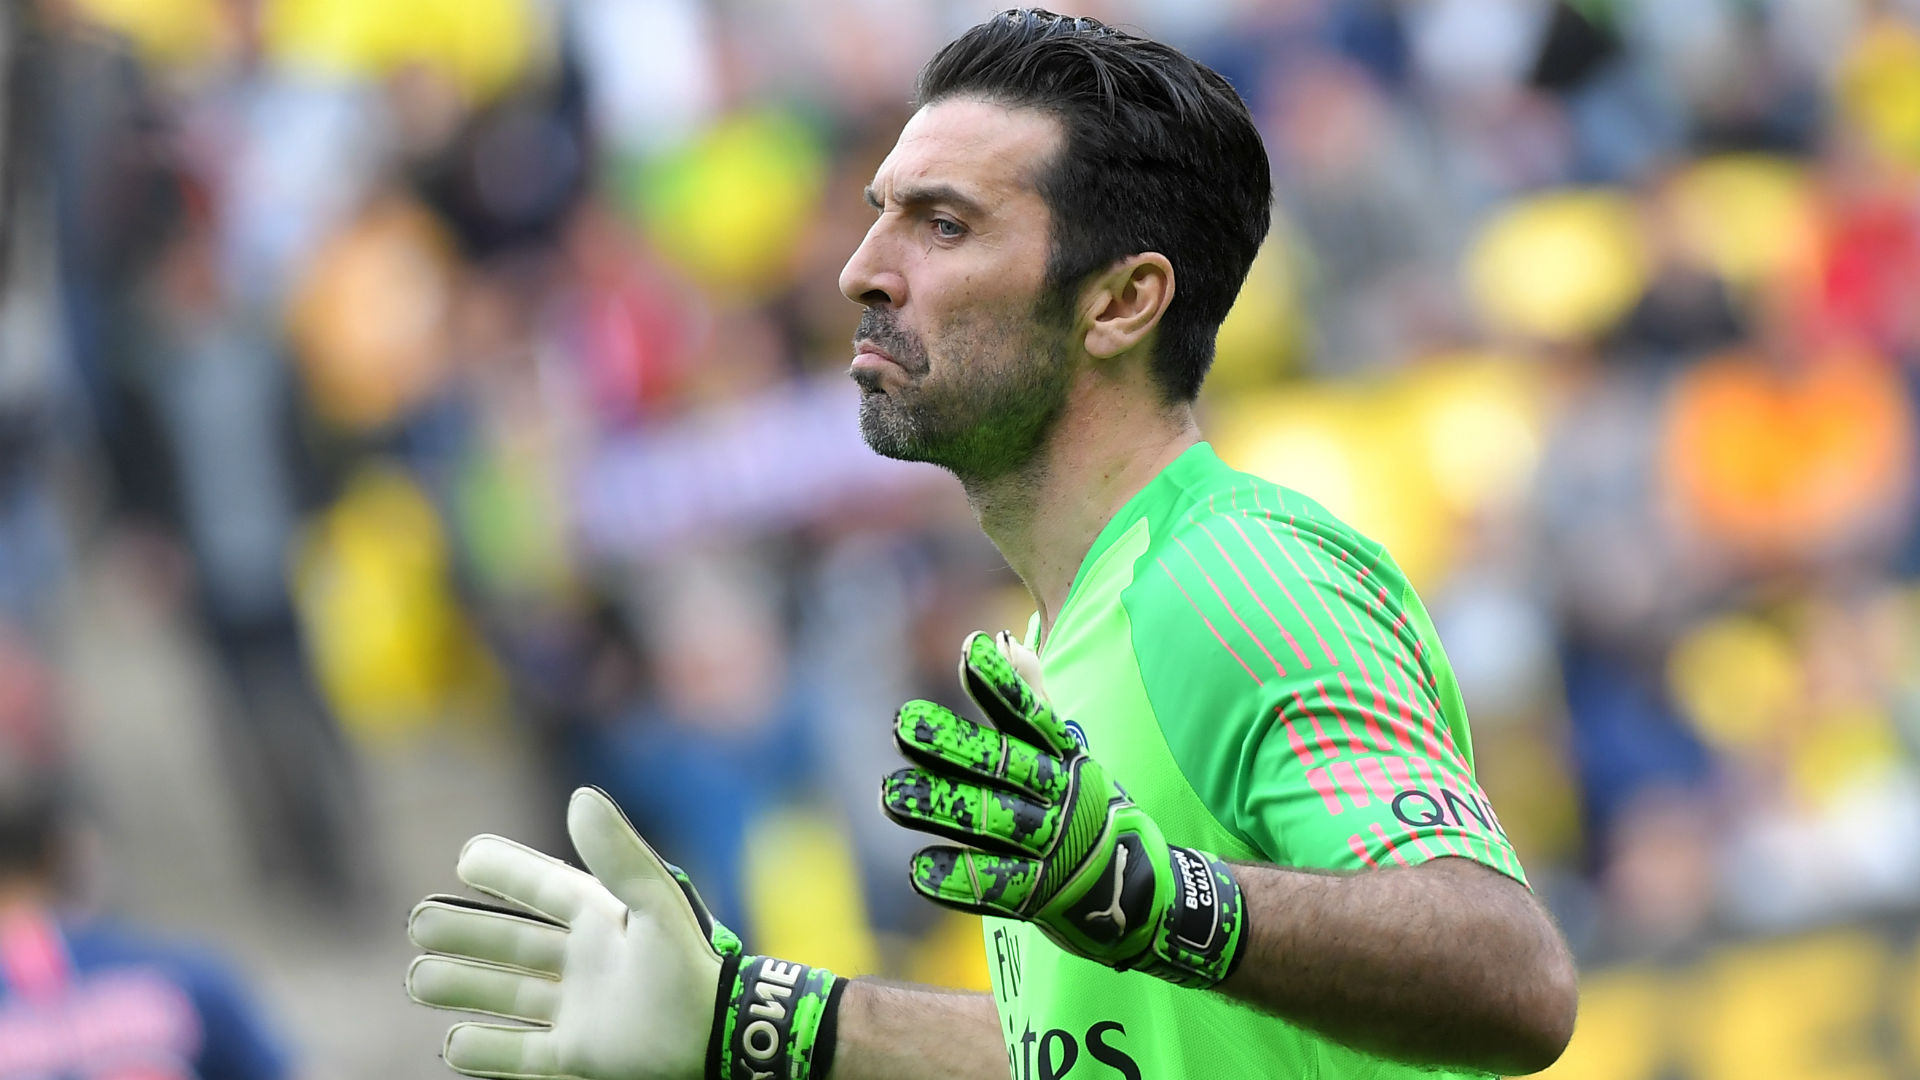 Paris Saint-Germain appear keen on keeping Gianluigi Buffon for another year, with the Italian claiming he has been offered an extension.